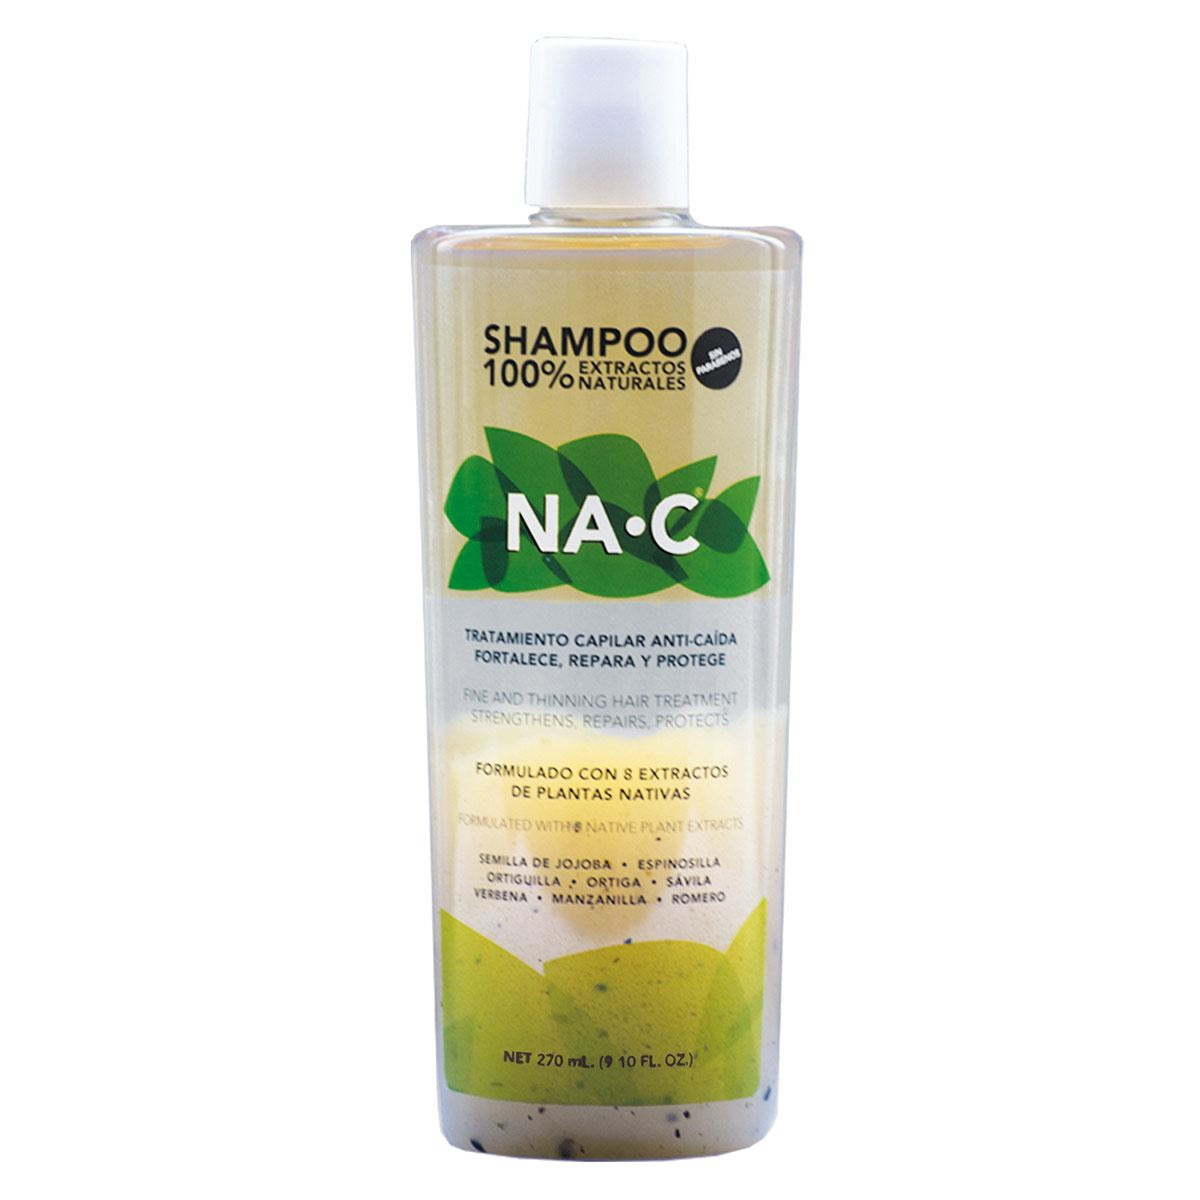 Shampoo na-c anticaída 270 ml  - Sanborns